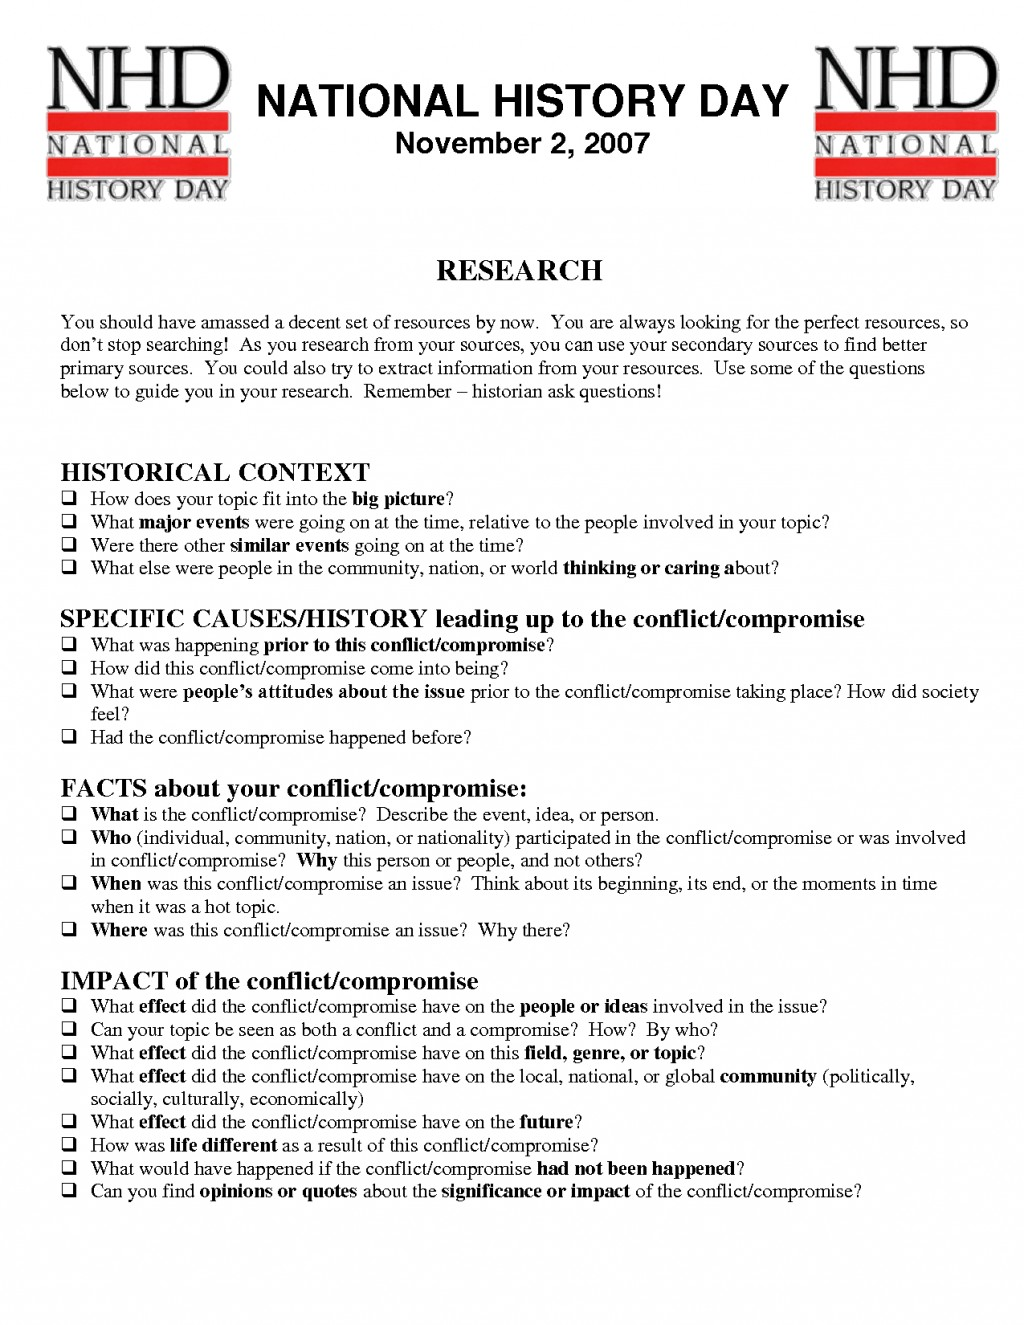 007 College Essays Application Example Of Examples Process Essay Topics L Marvelous For Middle School Funny Large